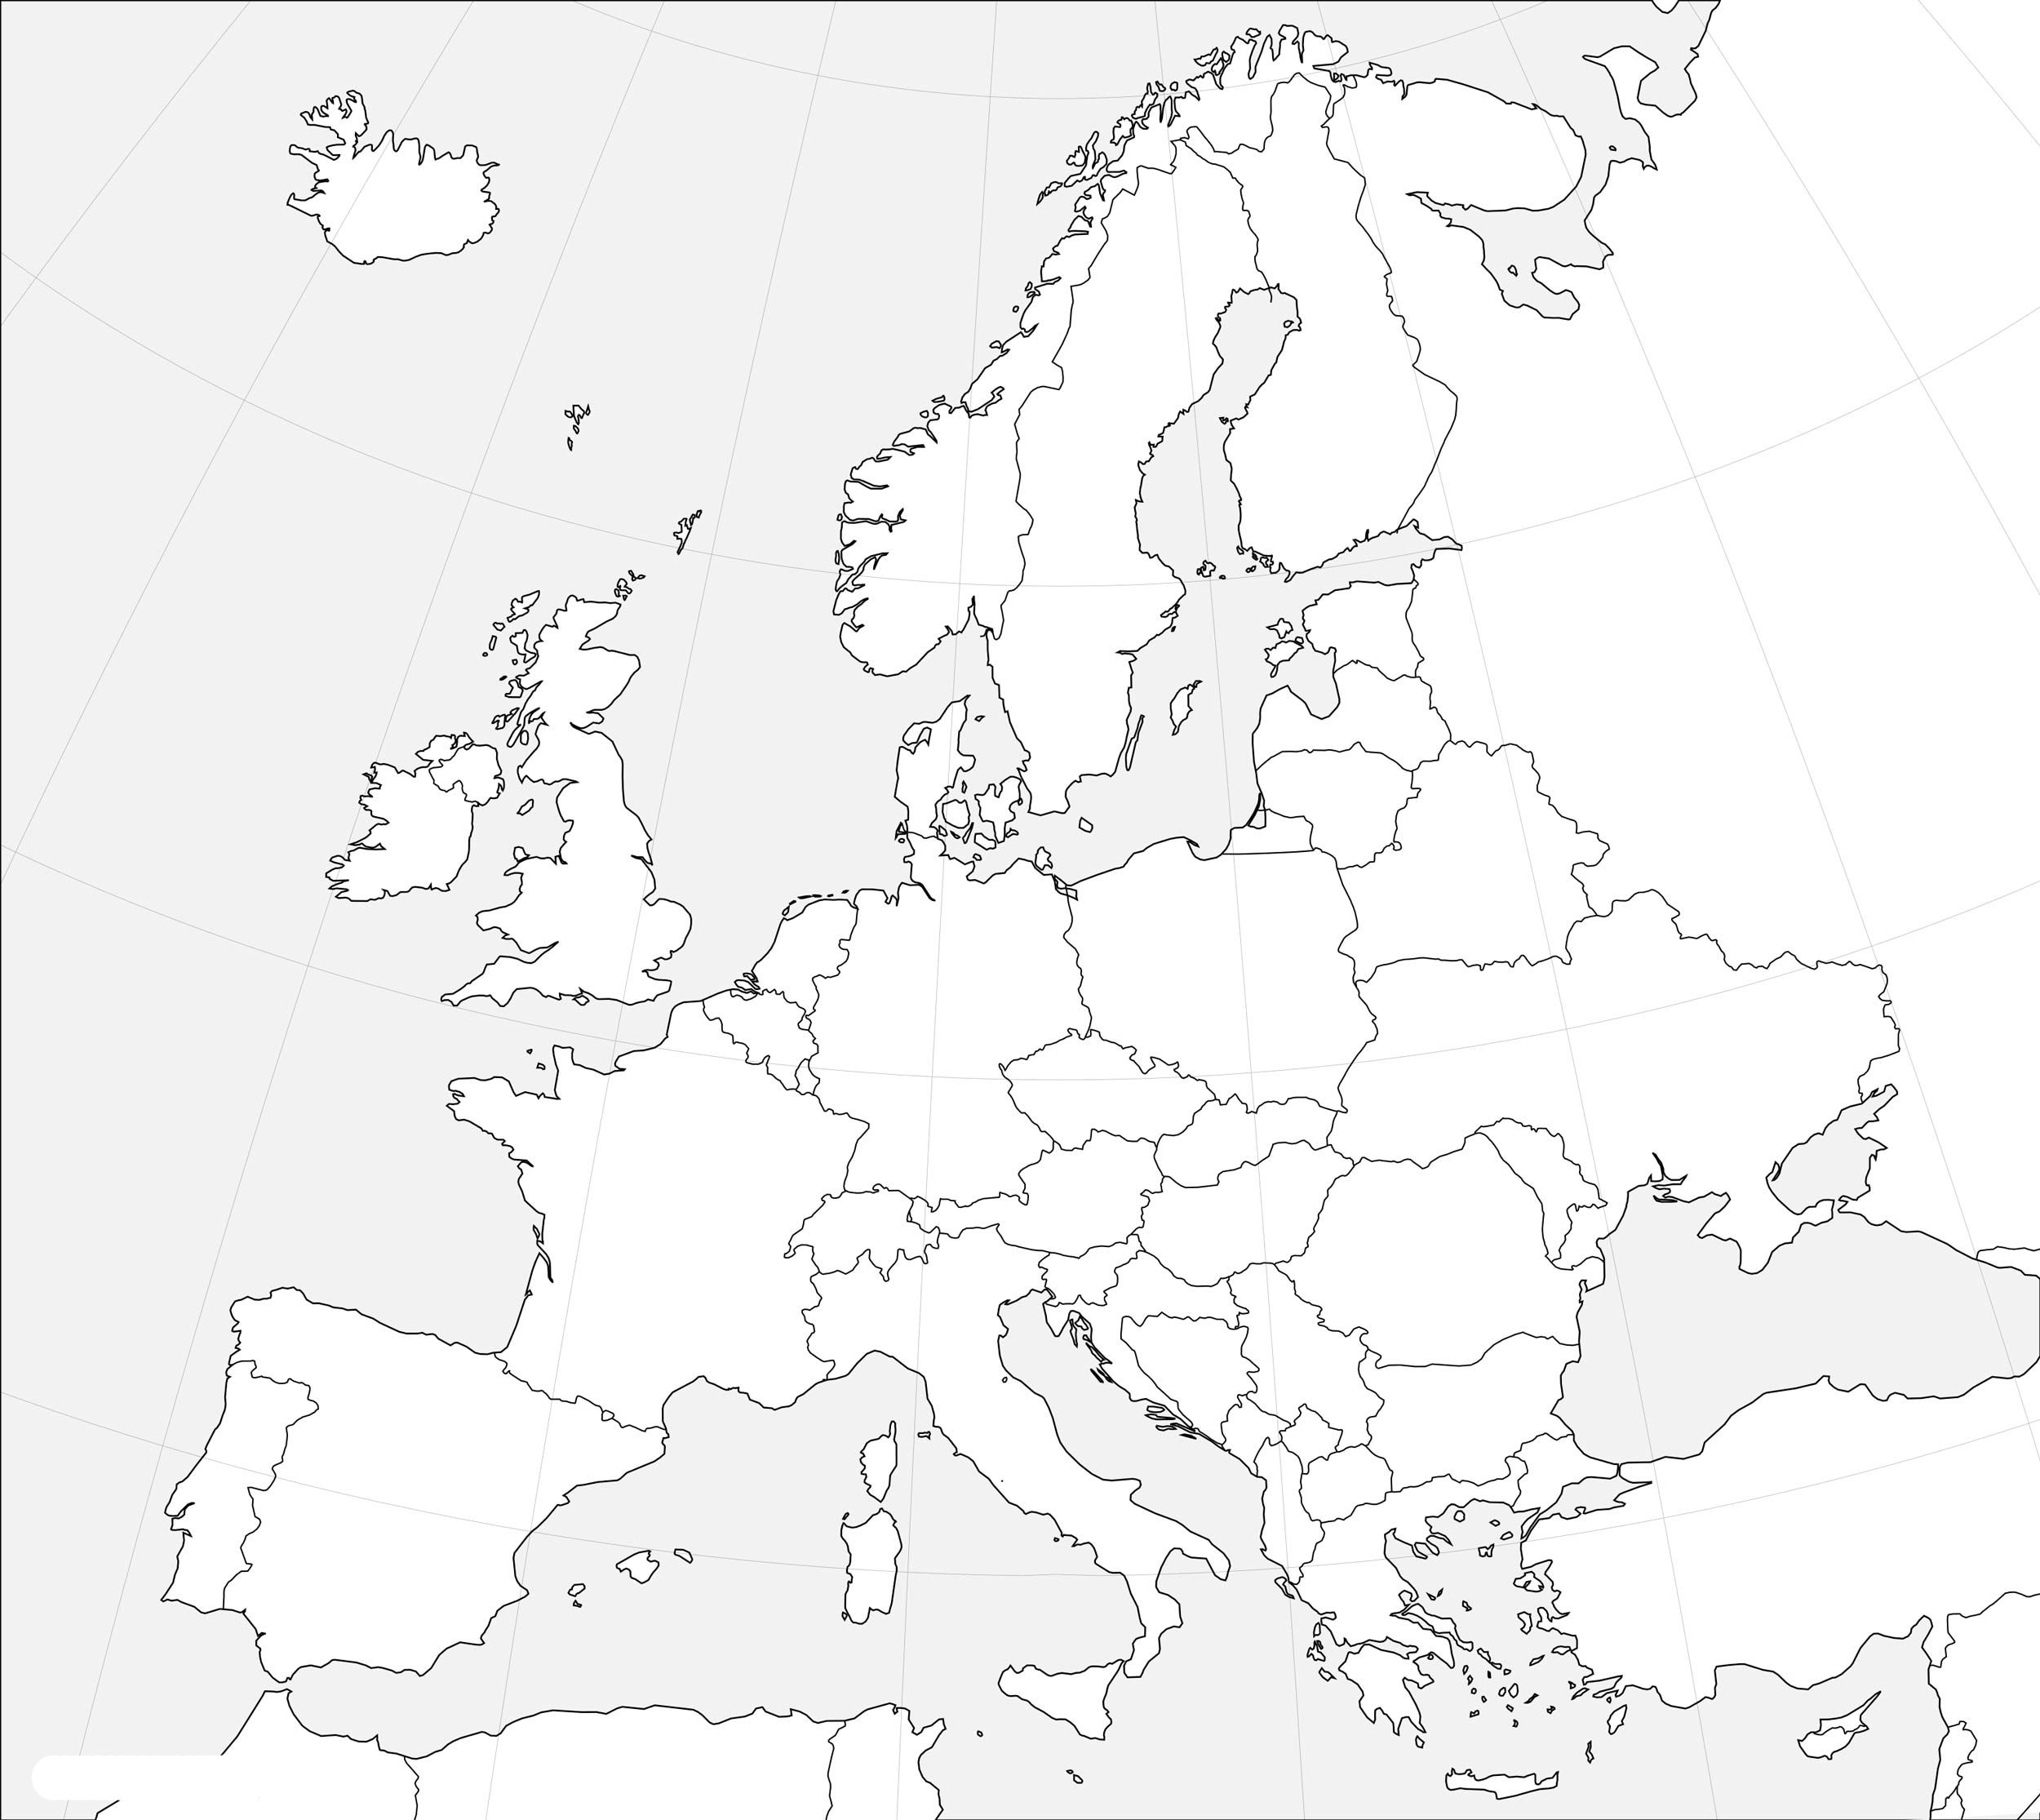 political map of europe blank Outline Map of Europe | Printable Blank Map of Europe | WhatsAnswer